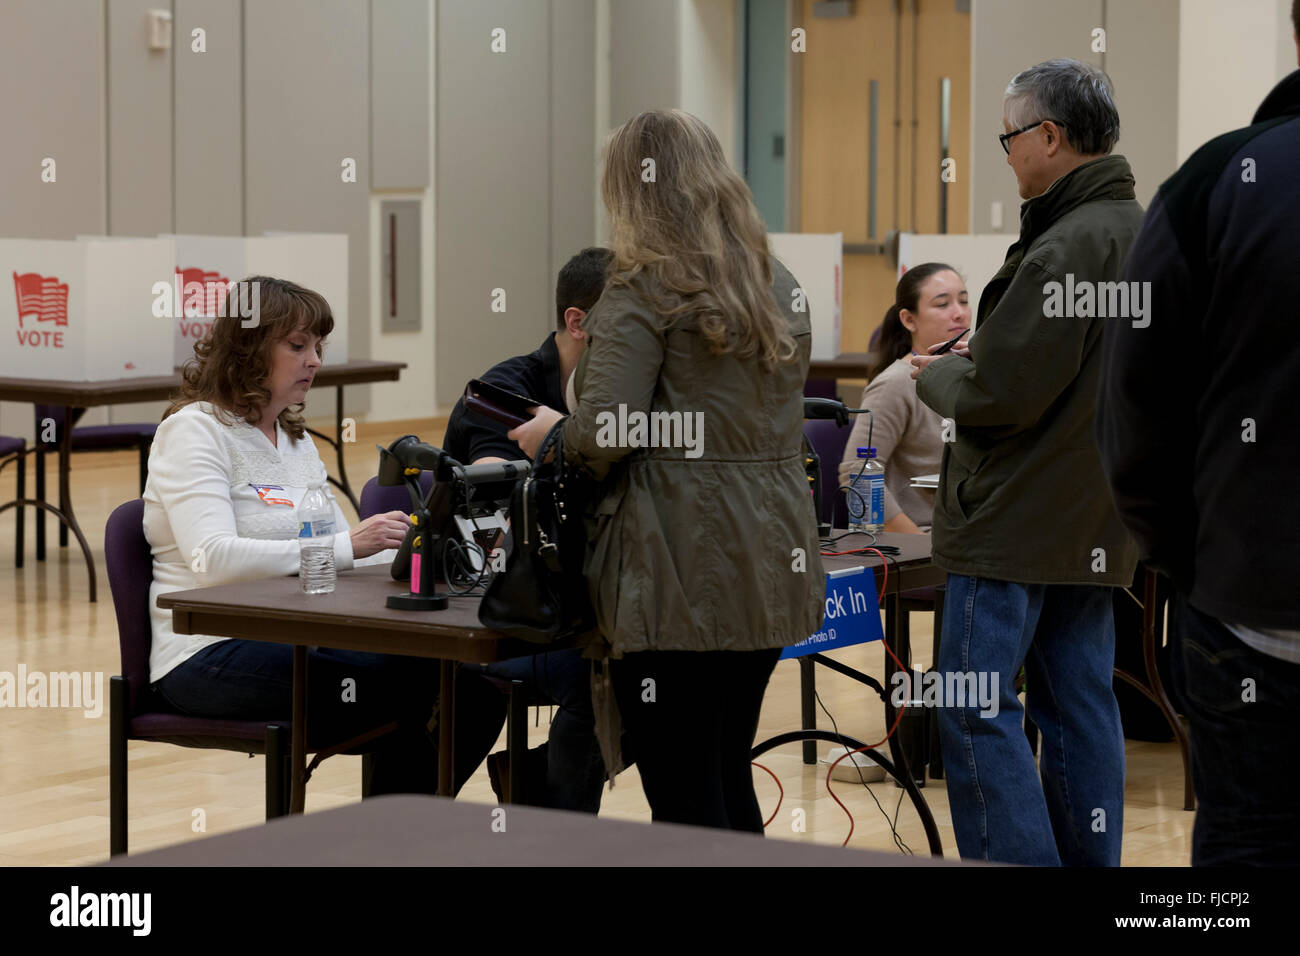 Arlington, Virginia, USA. 1st March, 2016. Virginians cast their votes in a pooling place for the US presidential Stock Photo